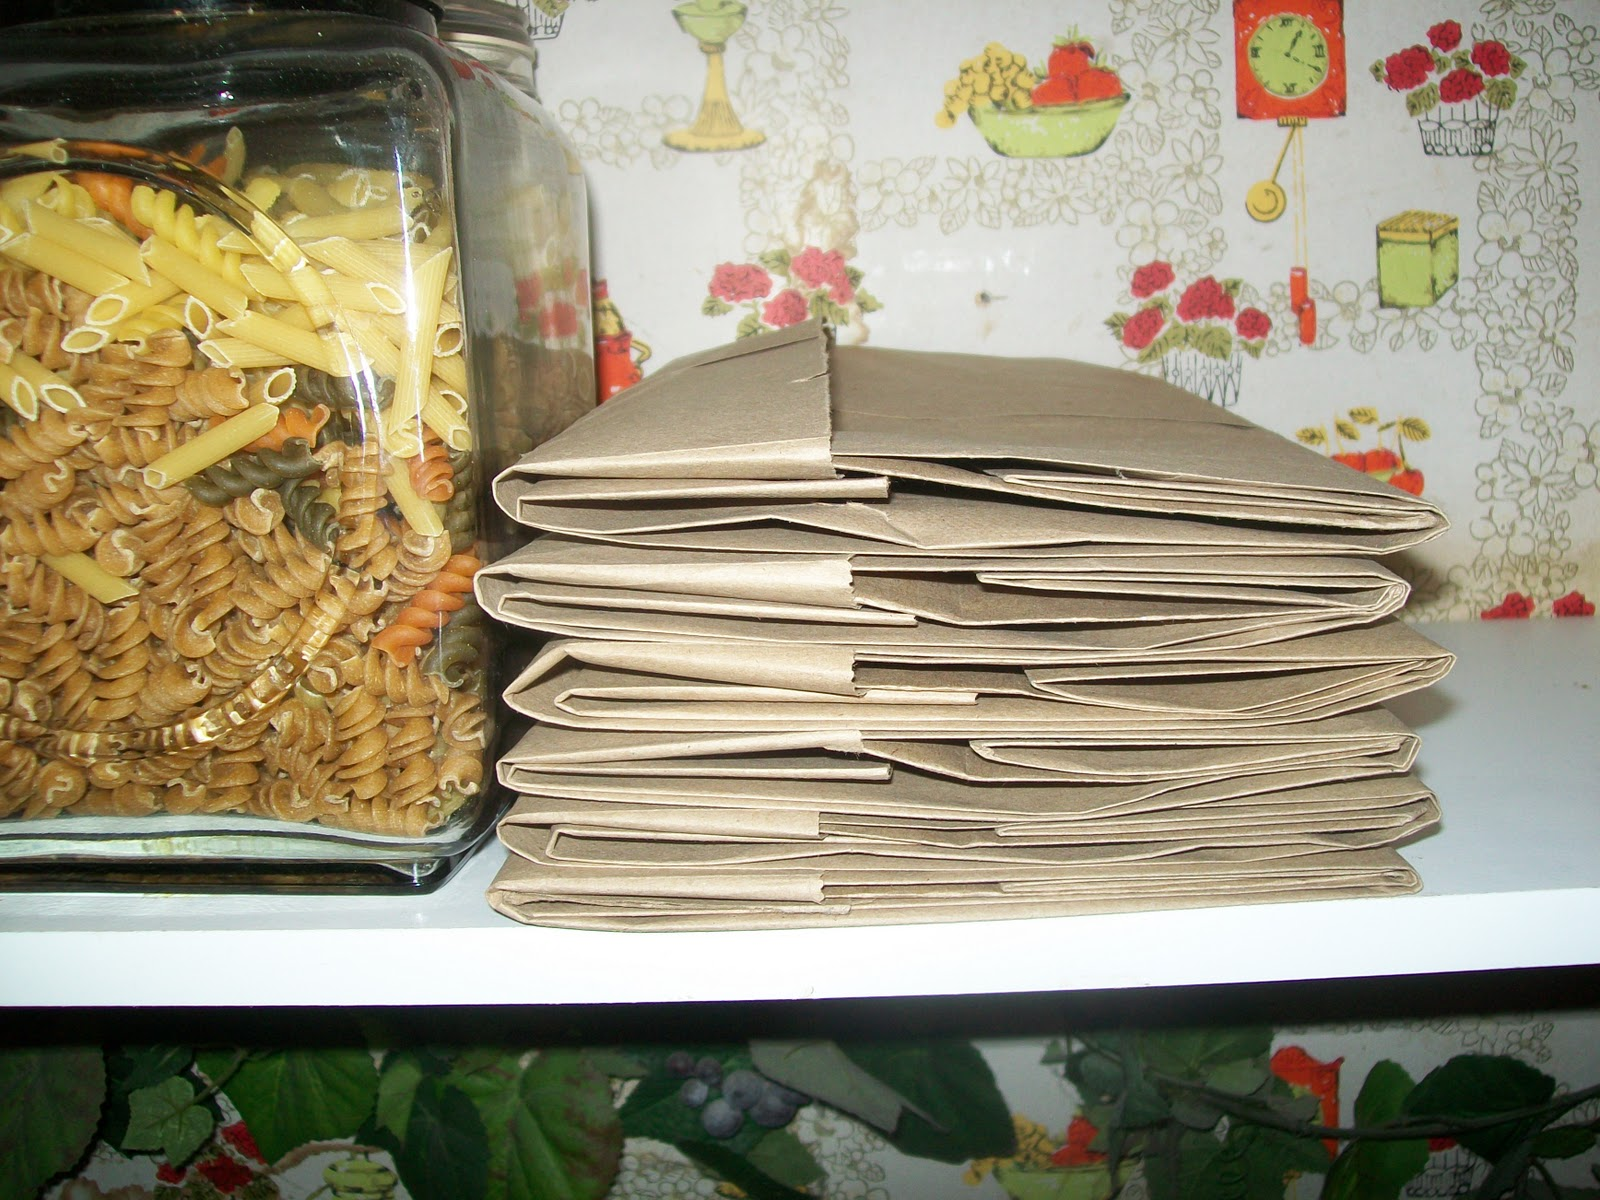 How To Fold A Paper Grocery Sack For Storage